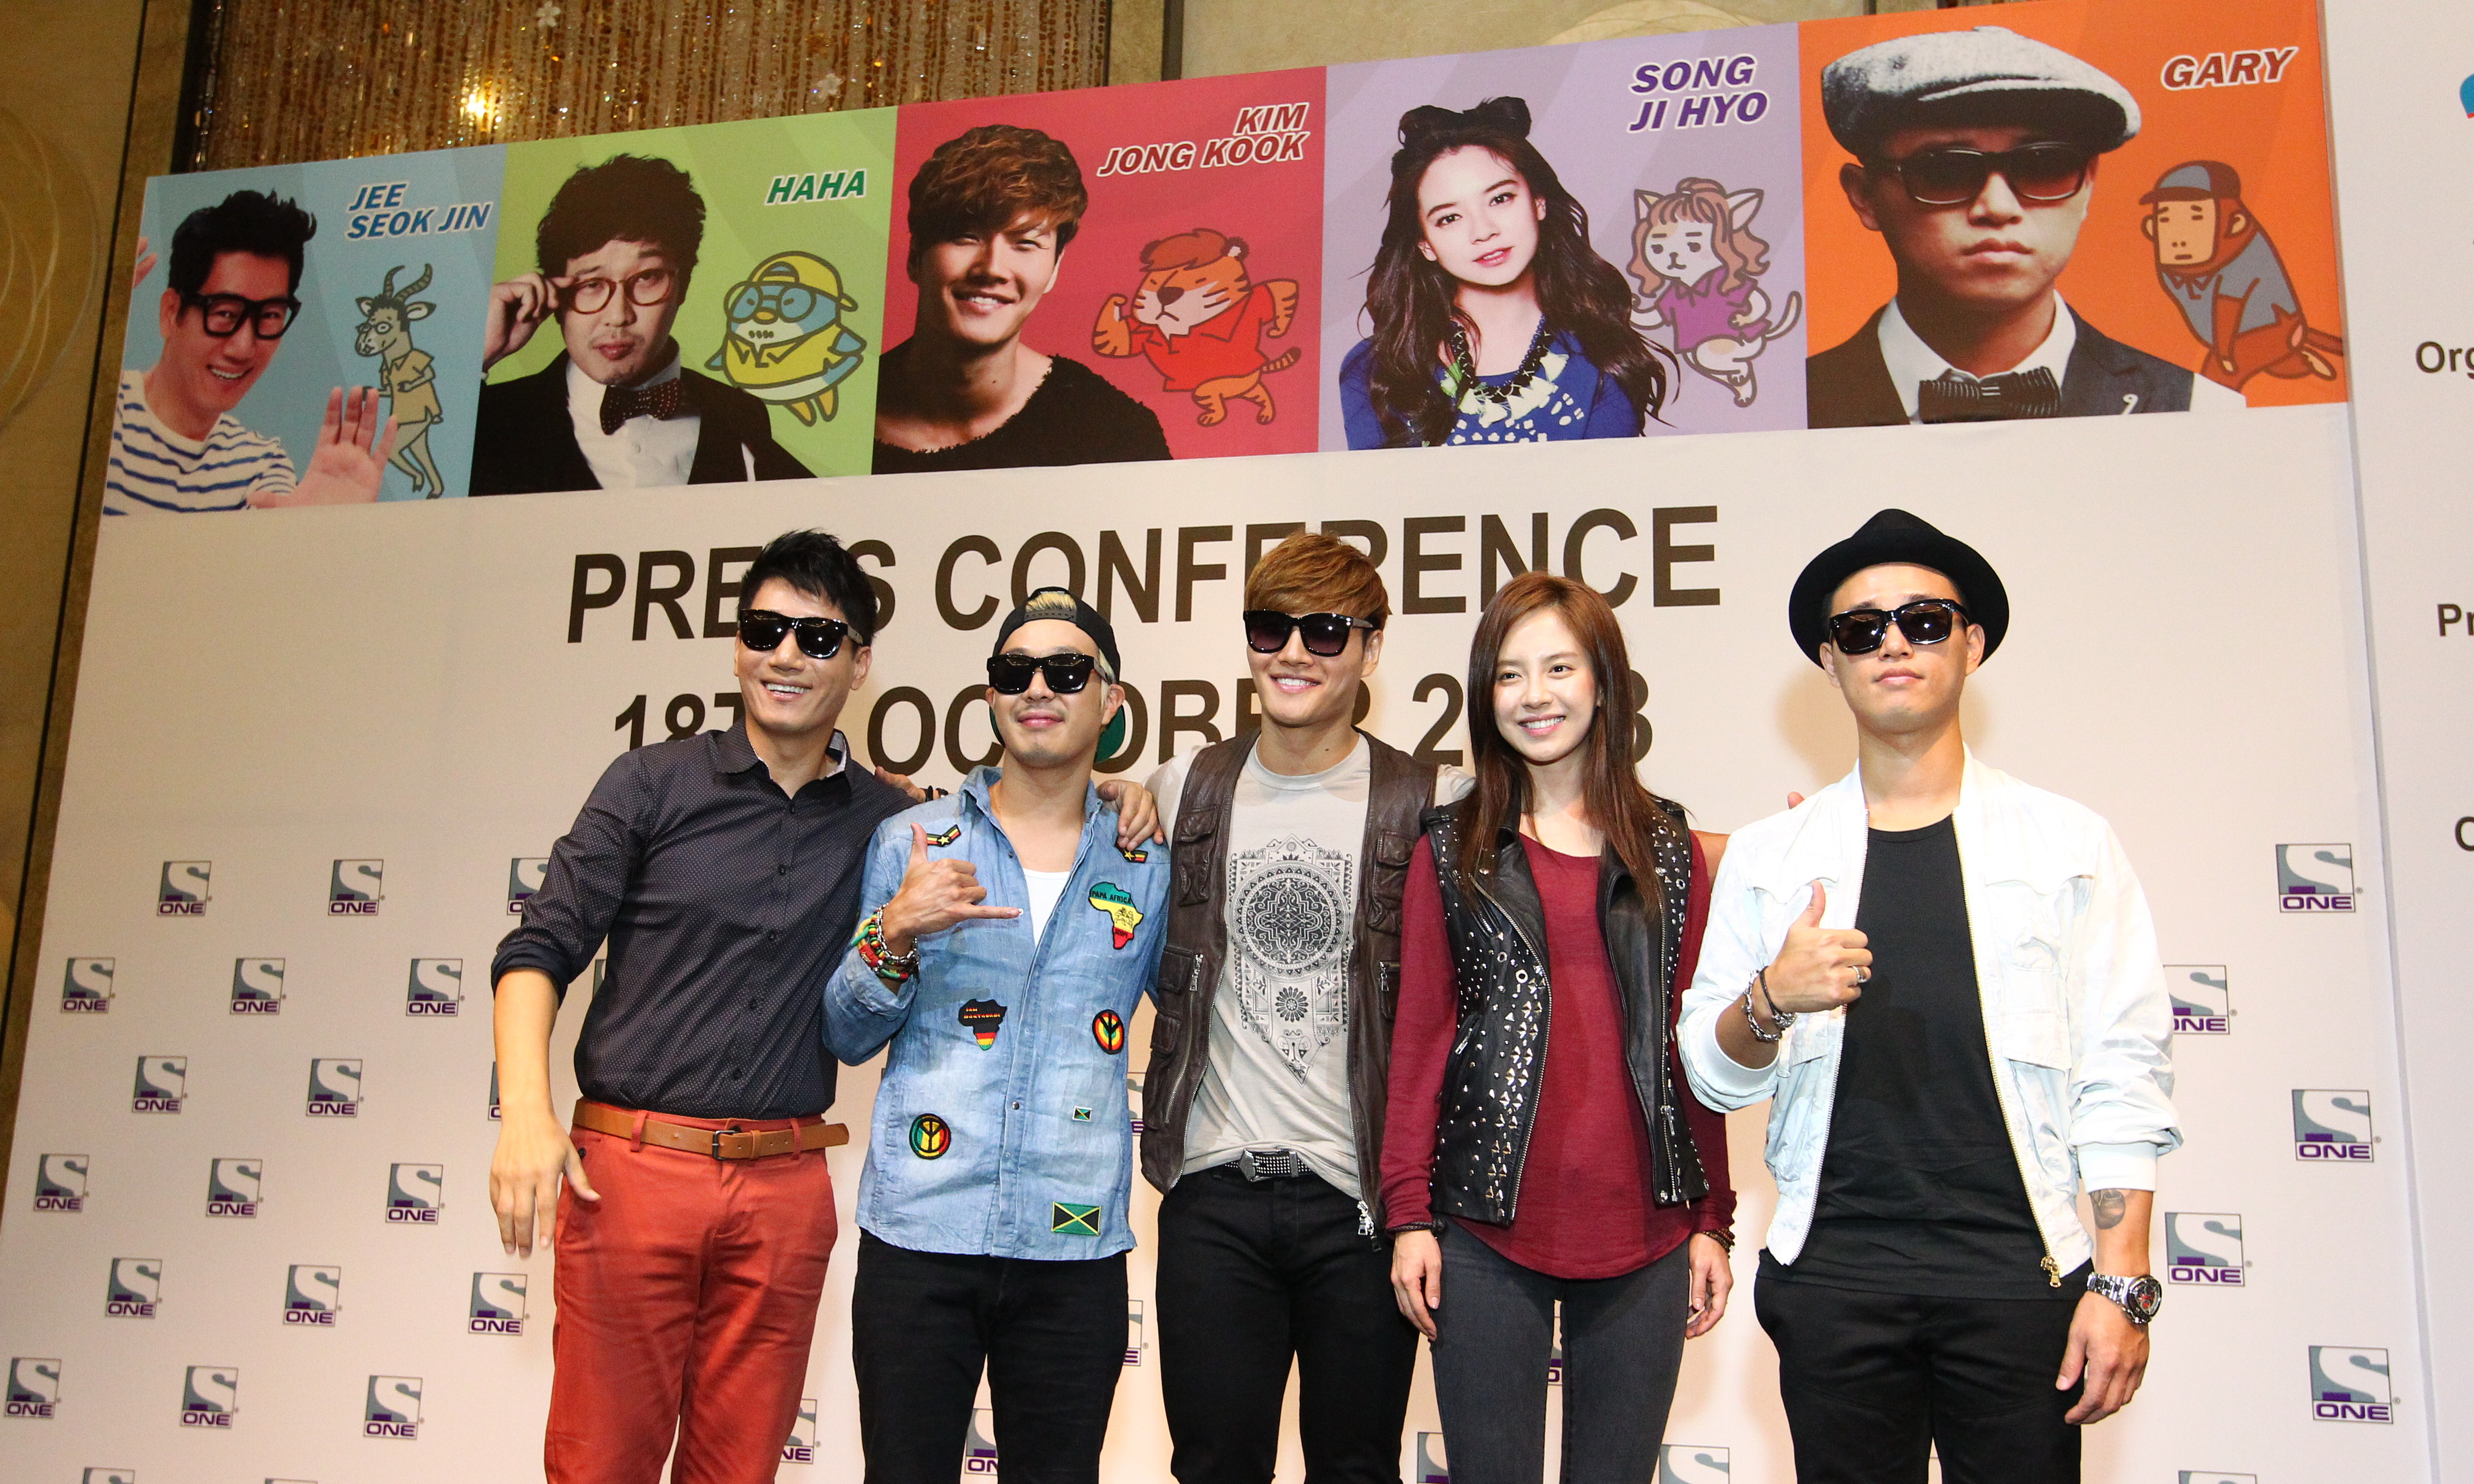 Running Man's launch in Singapore [GALLERY] | Marketing Interactive